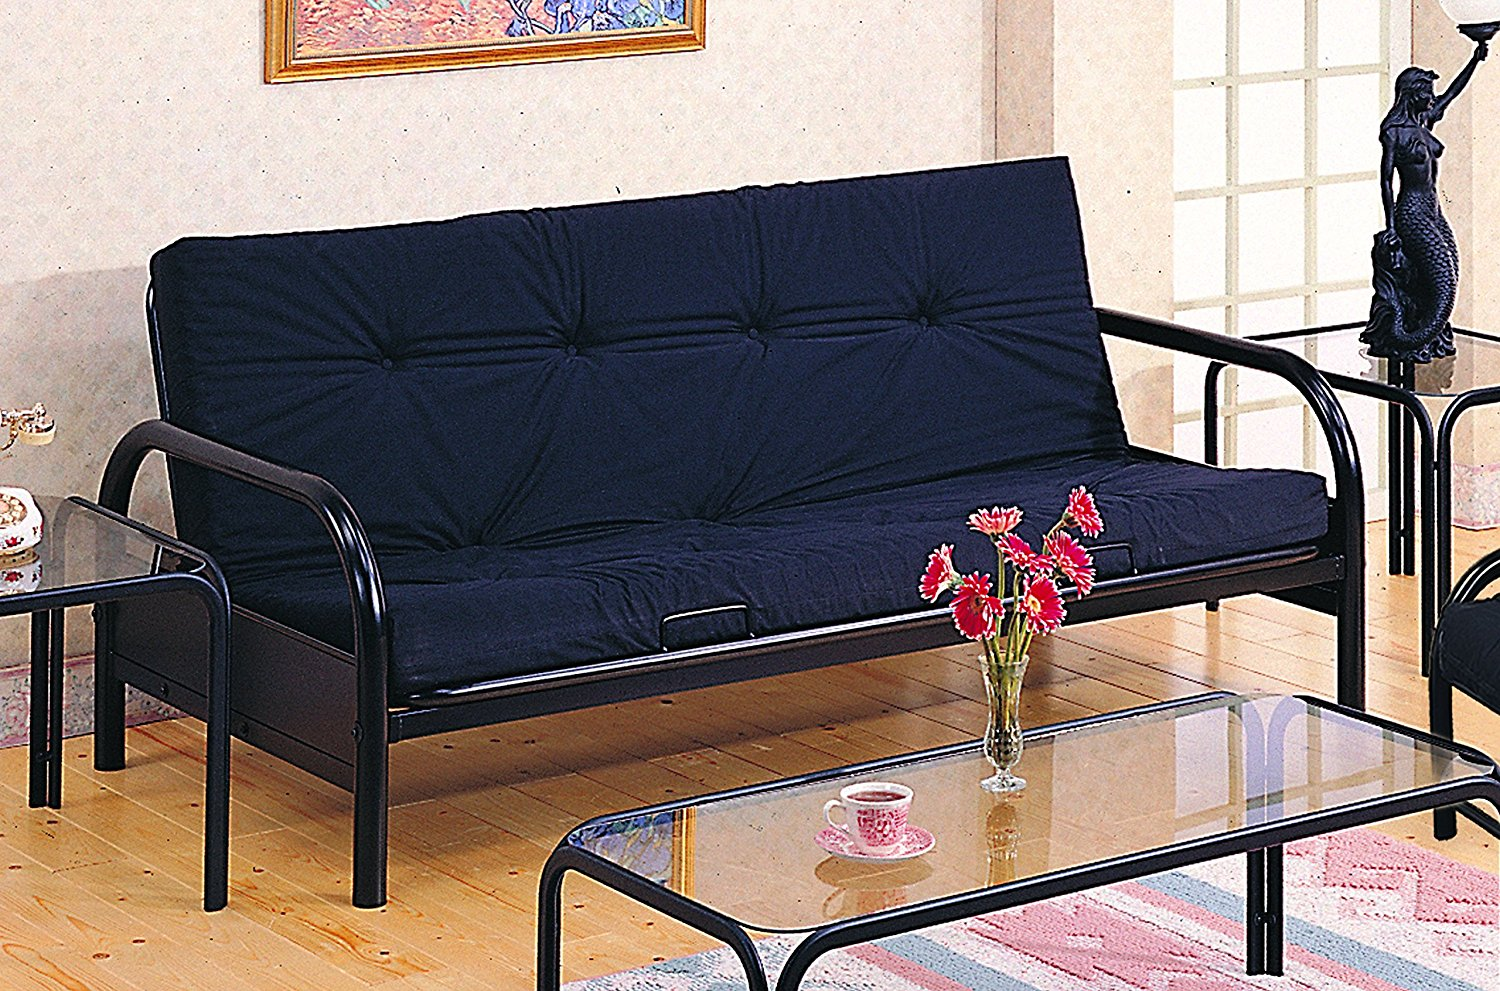 Coaster Modern Futon Sofa/Couch Frame, Black Metal